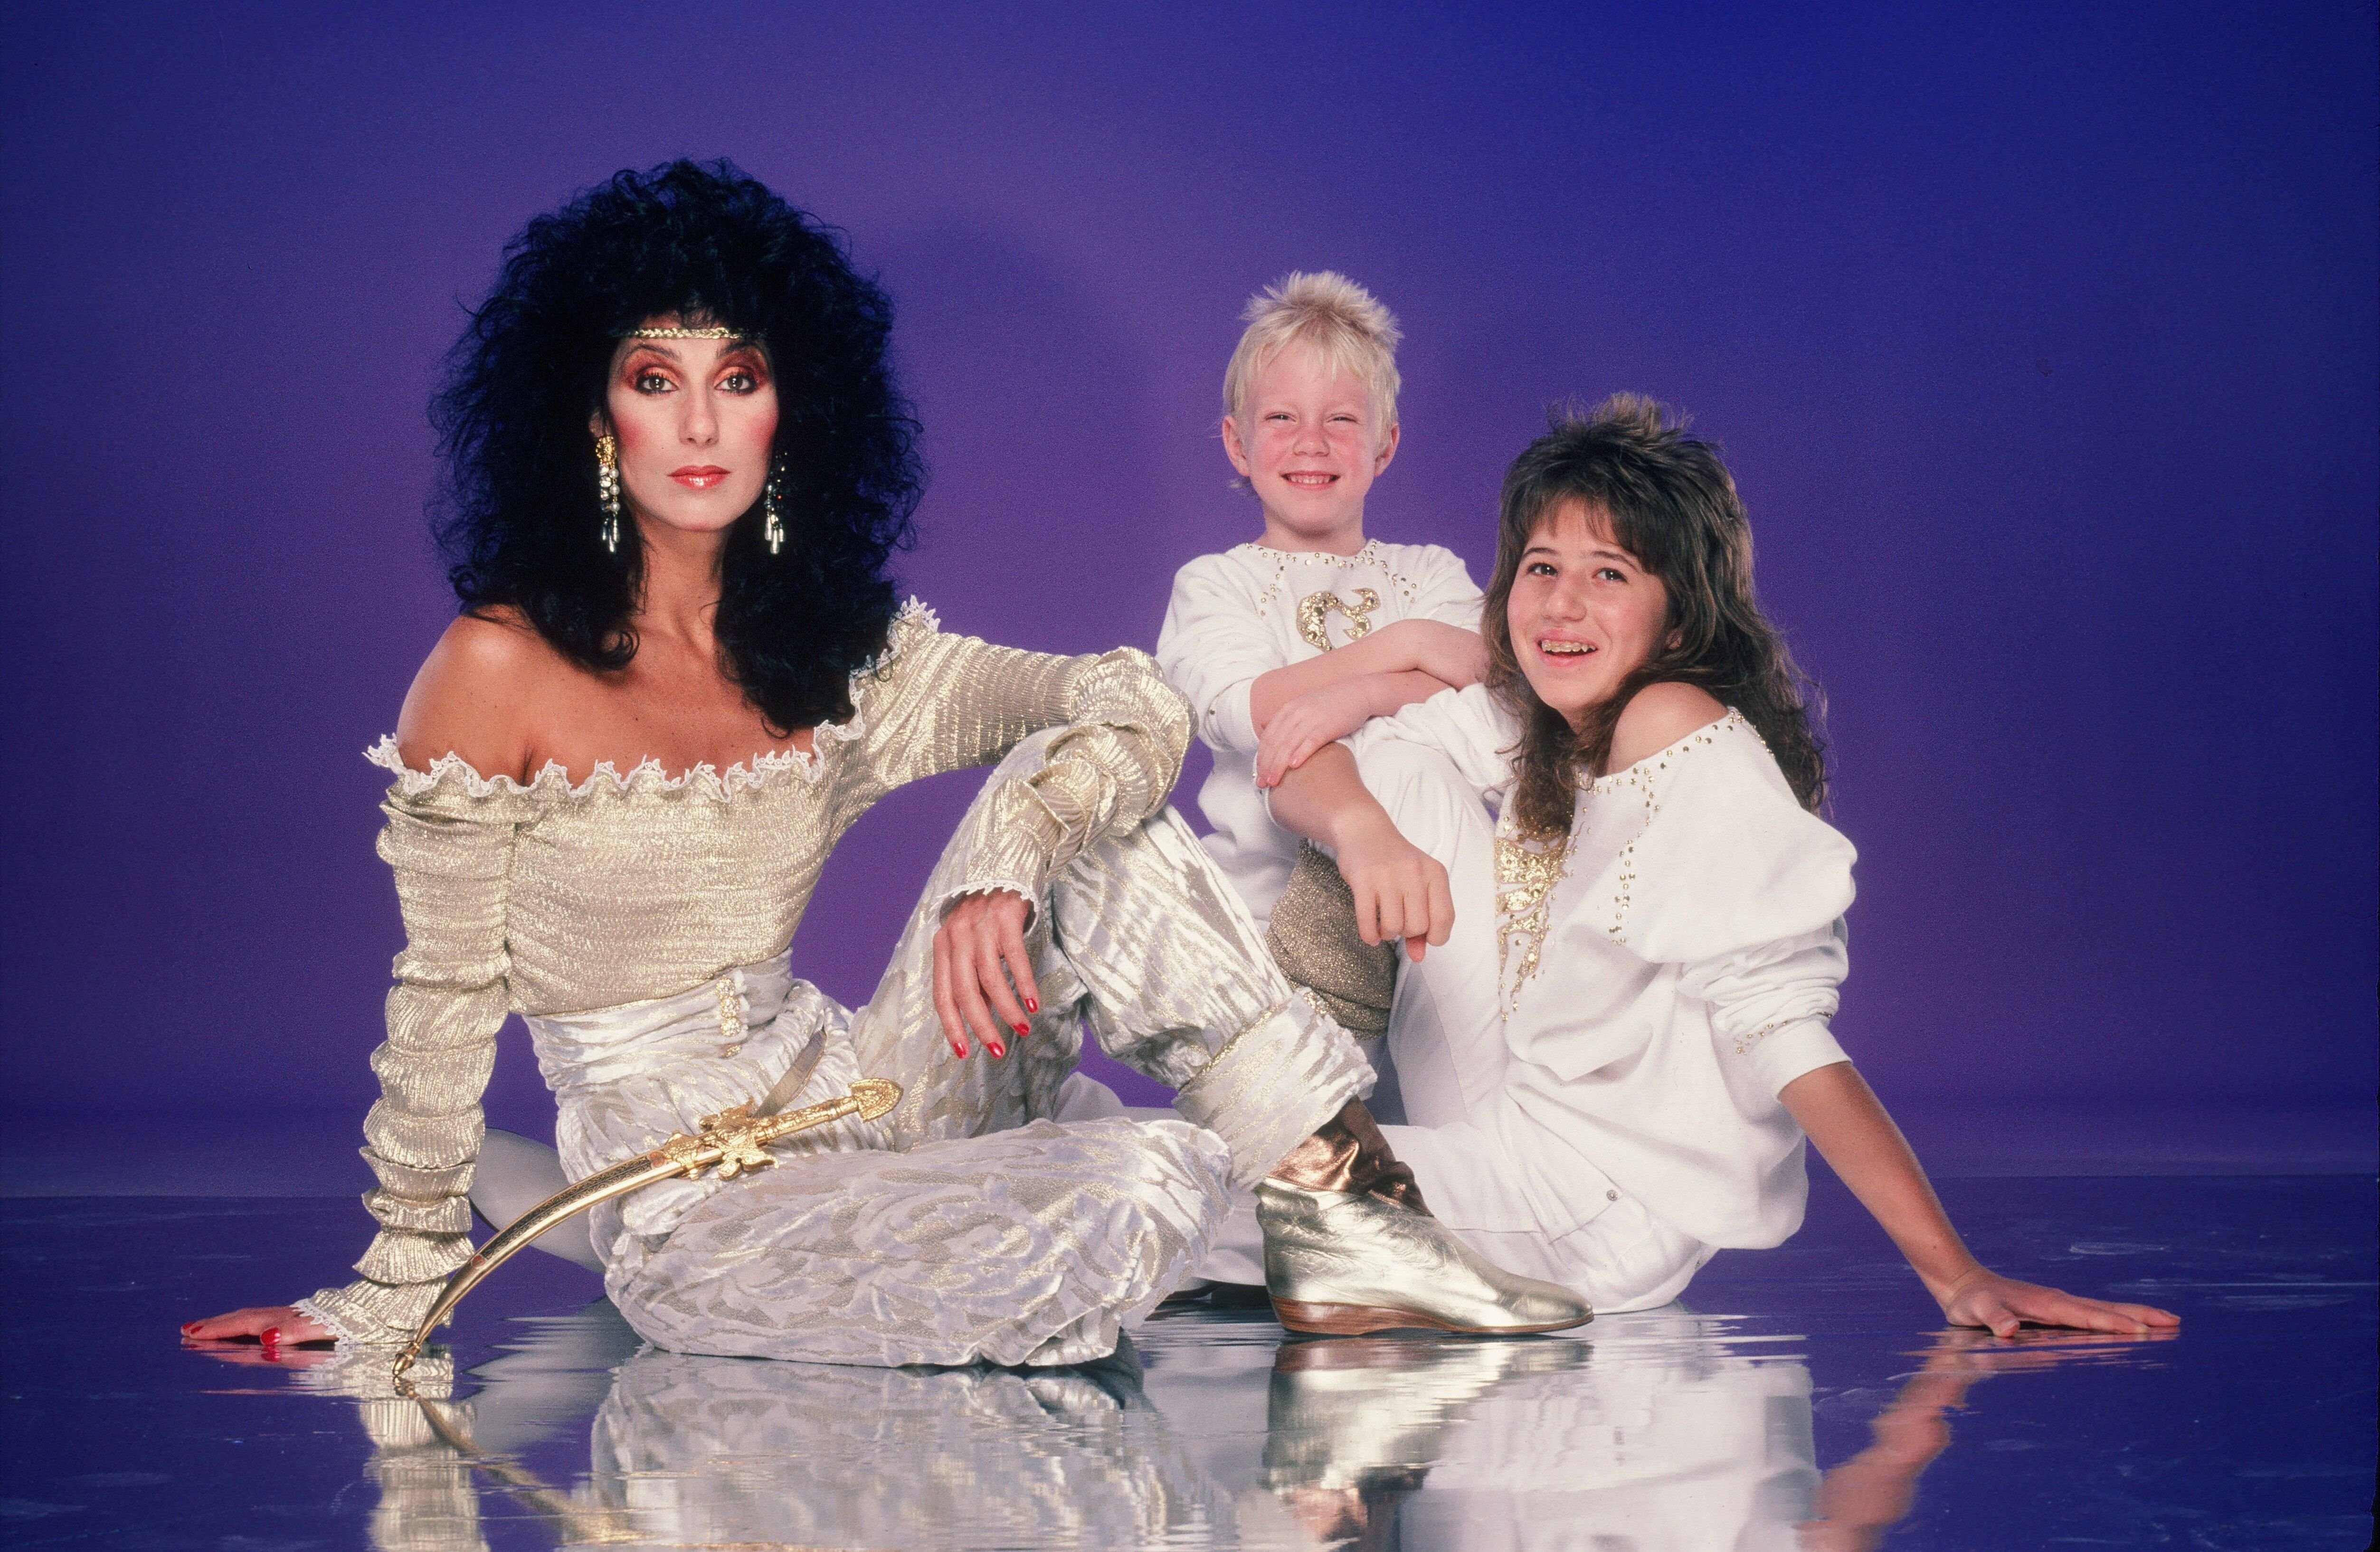 Cher, Chastity Bono (Chaz Bono) and Elijah Blue Allman in 1981 in Los Angeles, California | Source: Getty Images